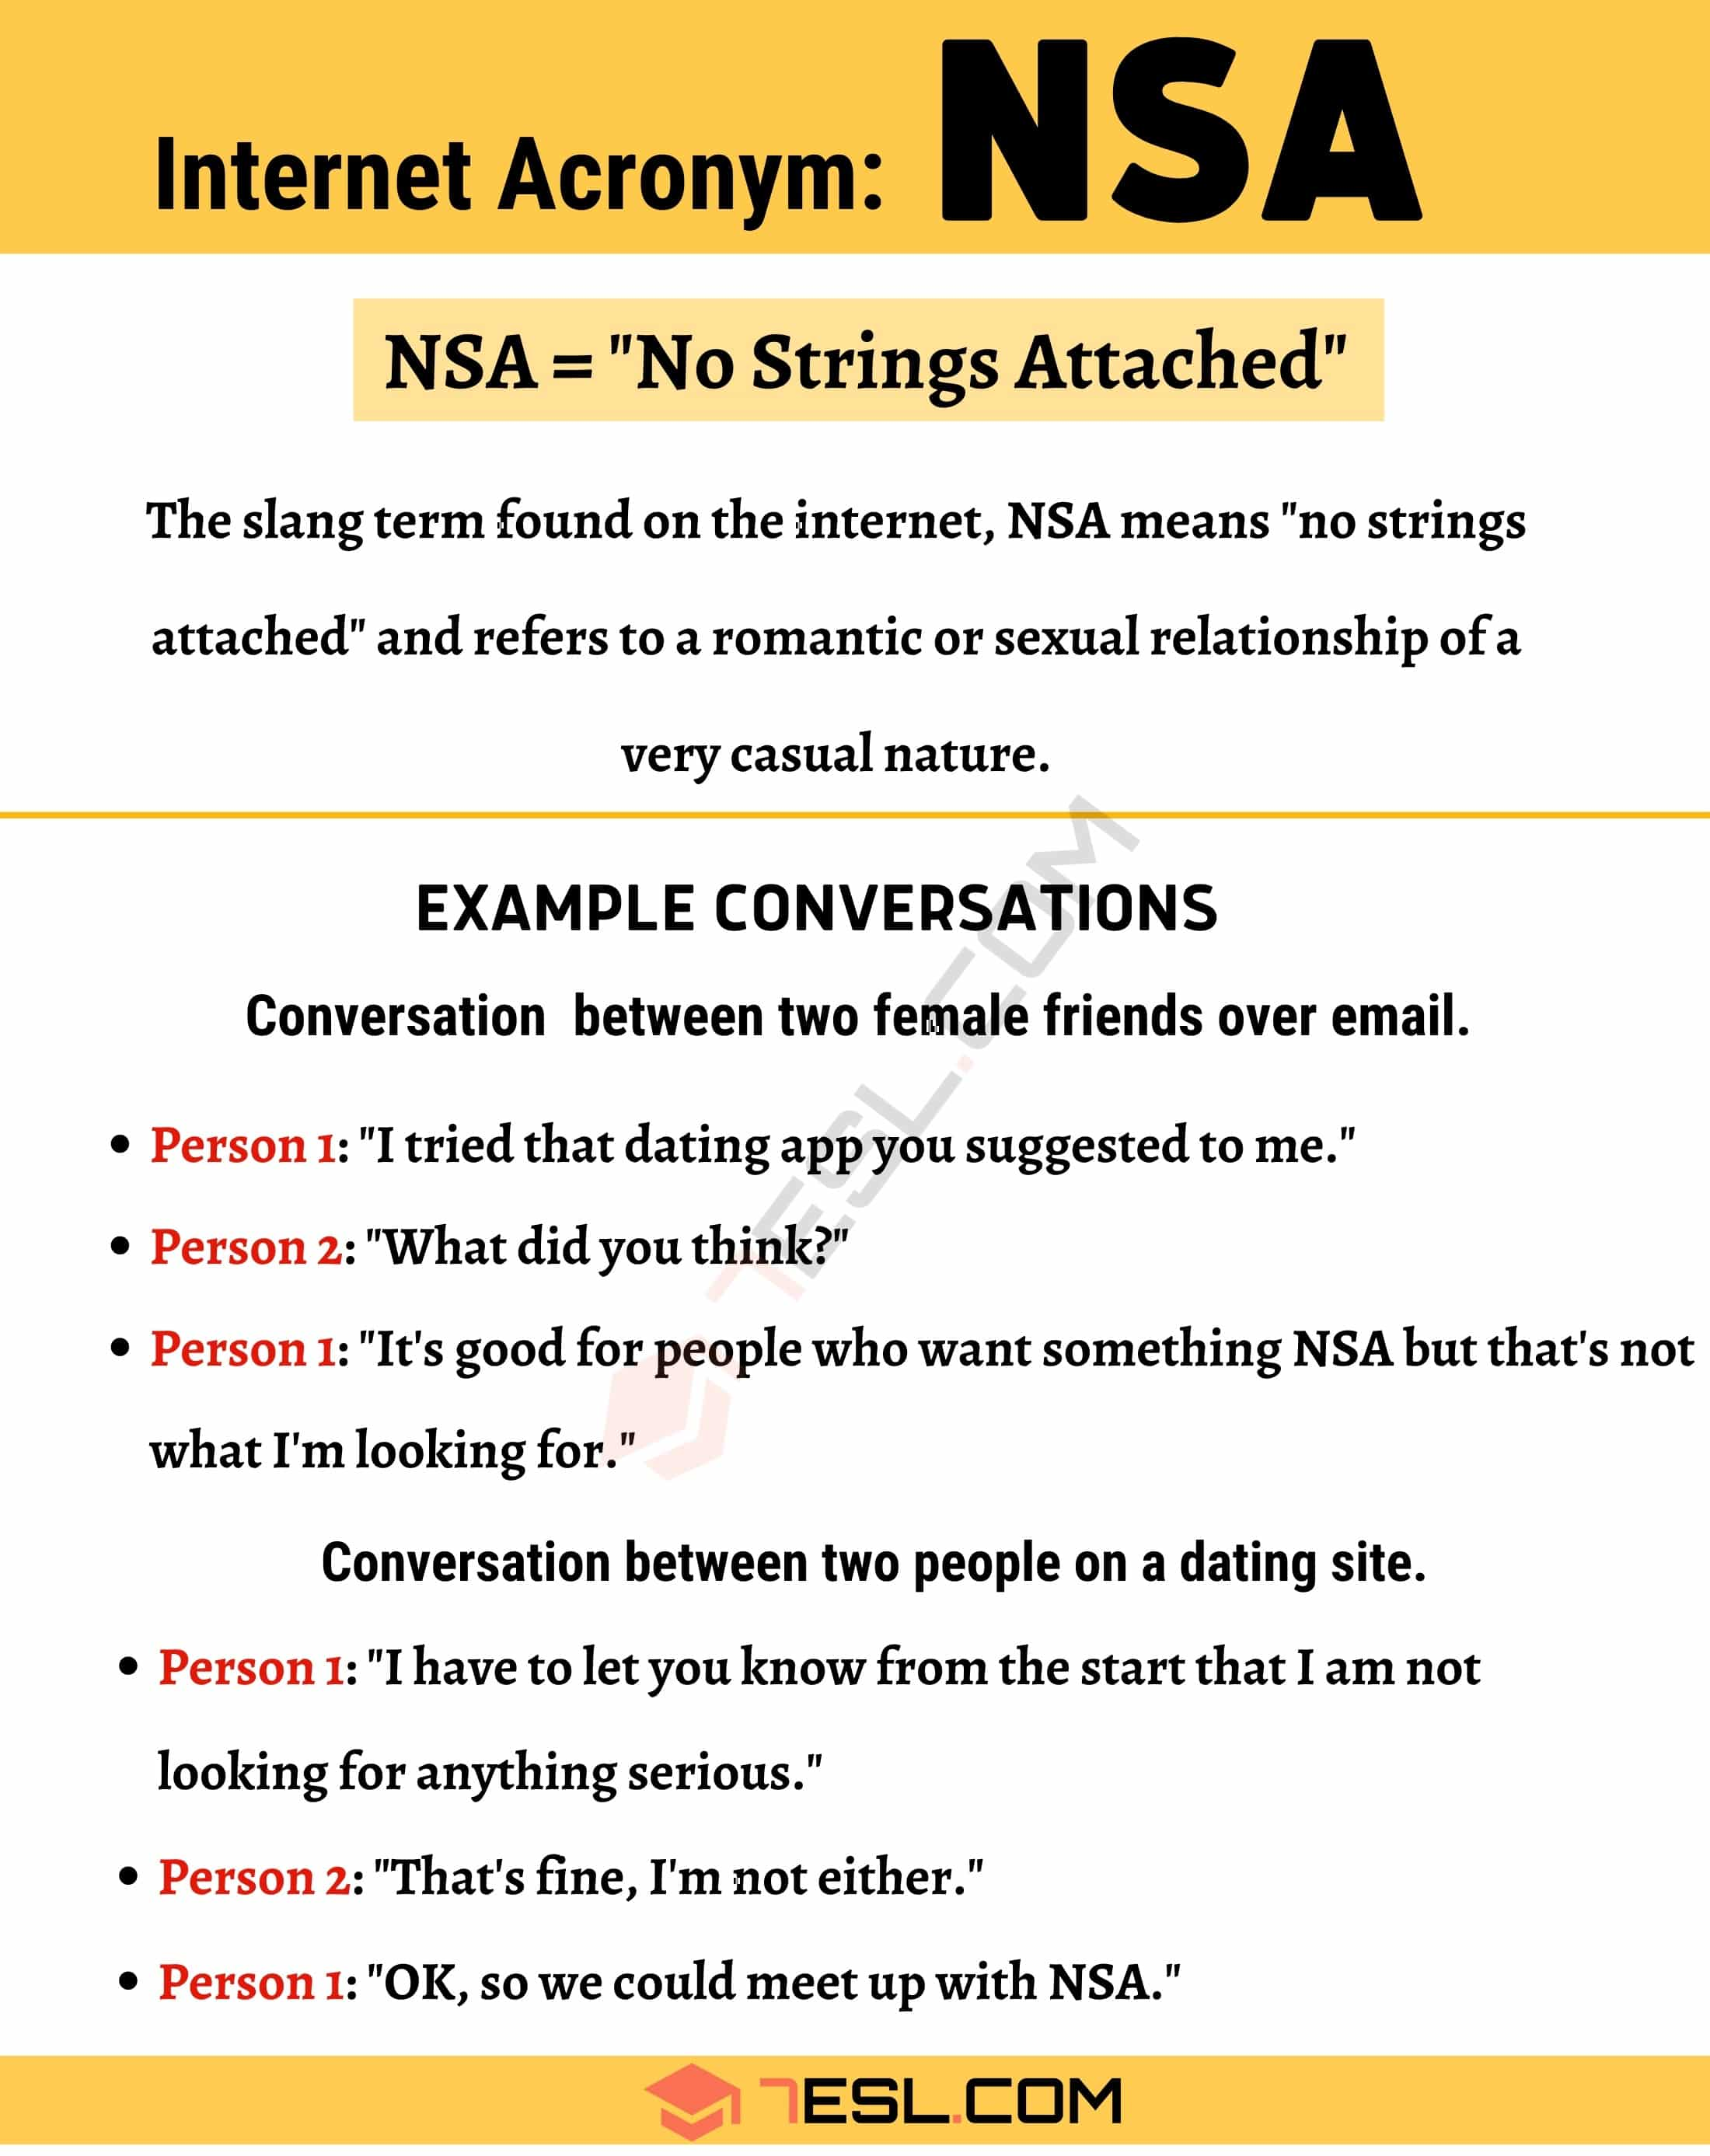 NSA Meaning: What Does this Term Mean and Stand for?